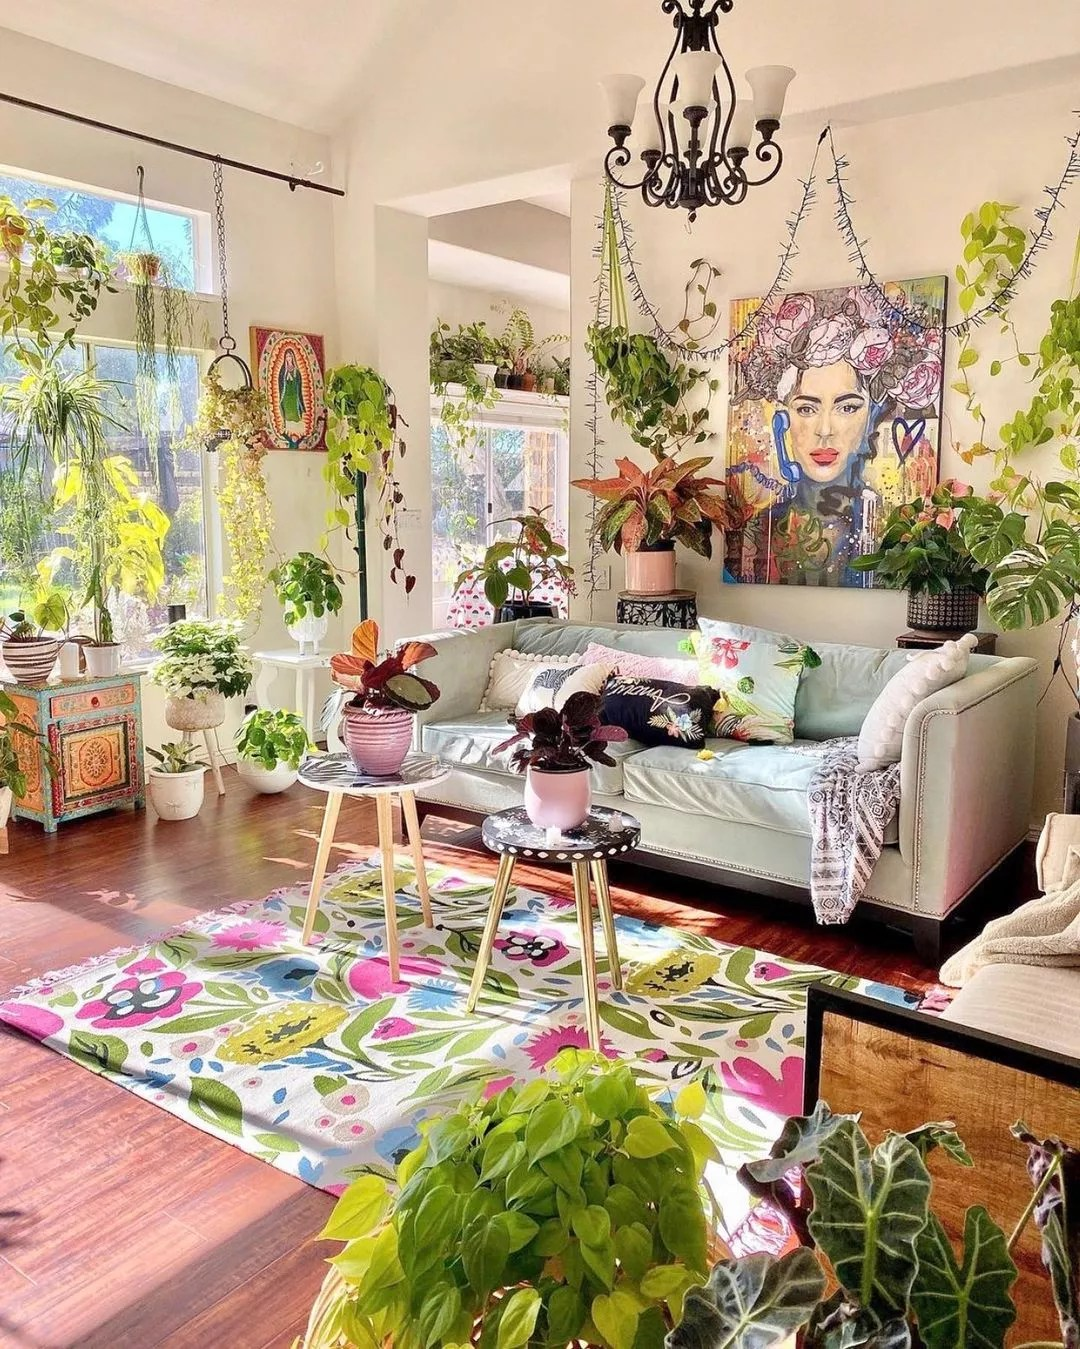 Open livingroom with several windows, high ceilings, and over 20 plants, including a pathos, English Ivy, spider plant, and Monstera. The room rug features bright, simple flowers and leaves.